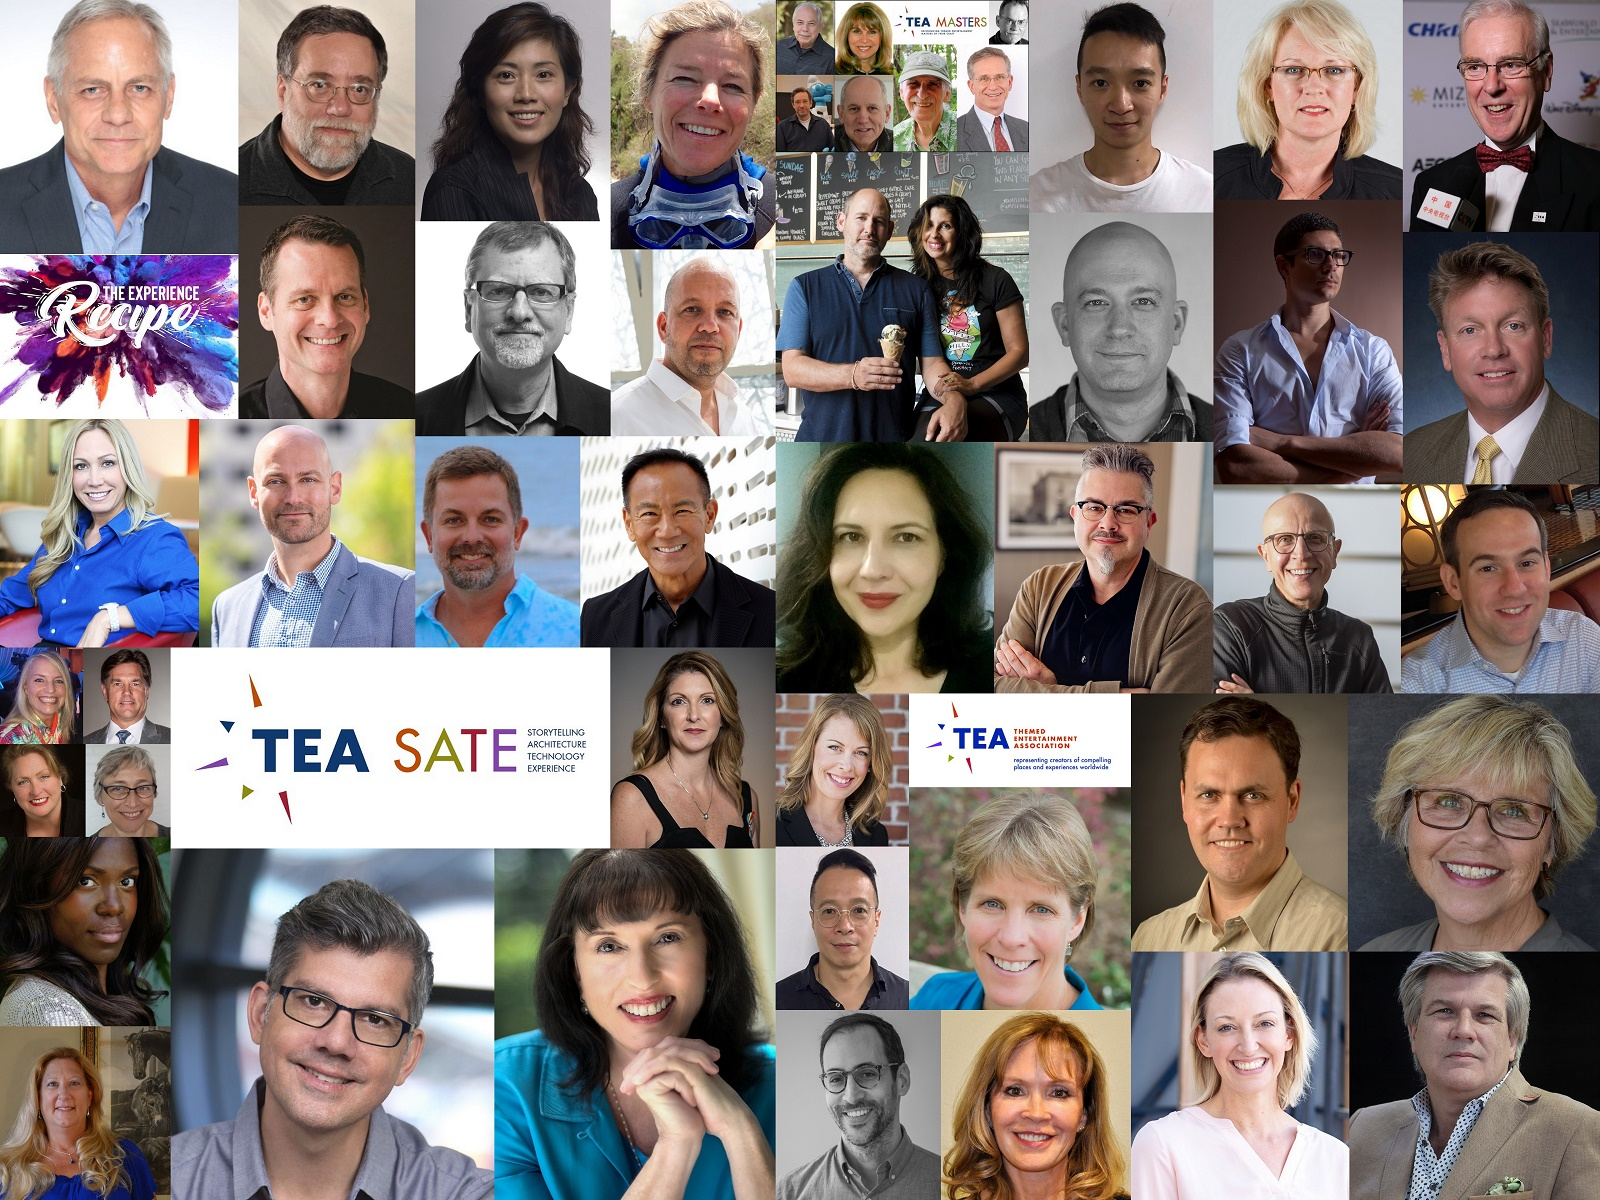 SATE IN ORLANDO - Speakers, sessions, schedule - TEA SATE Orlando - SeaWorld, 4-5 October 2018